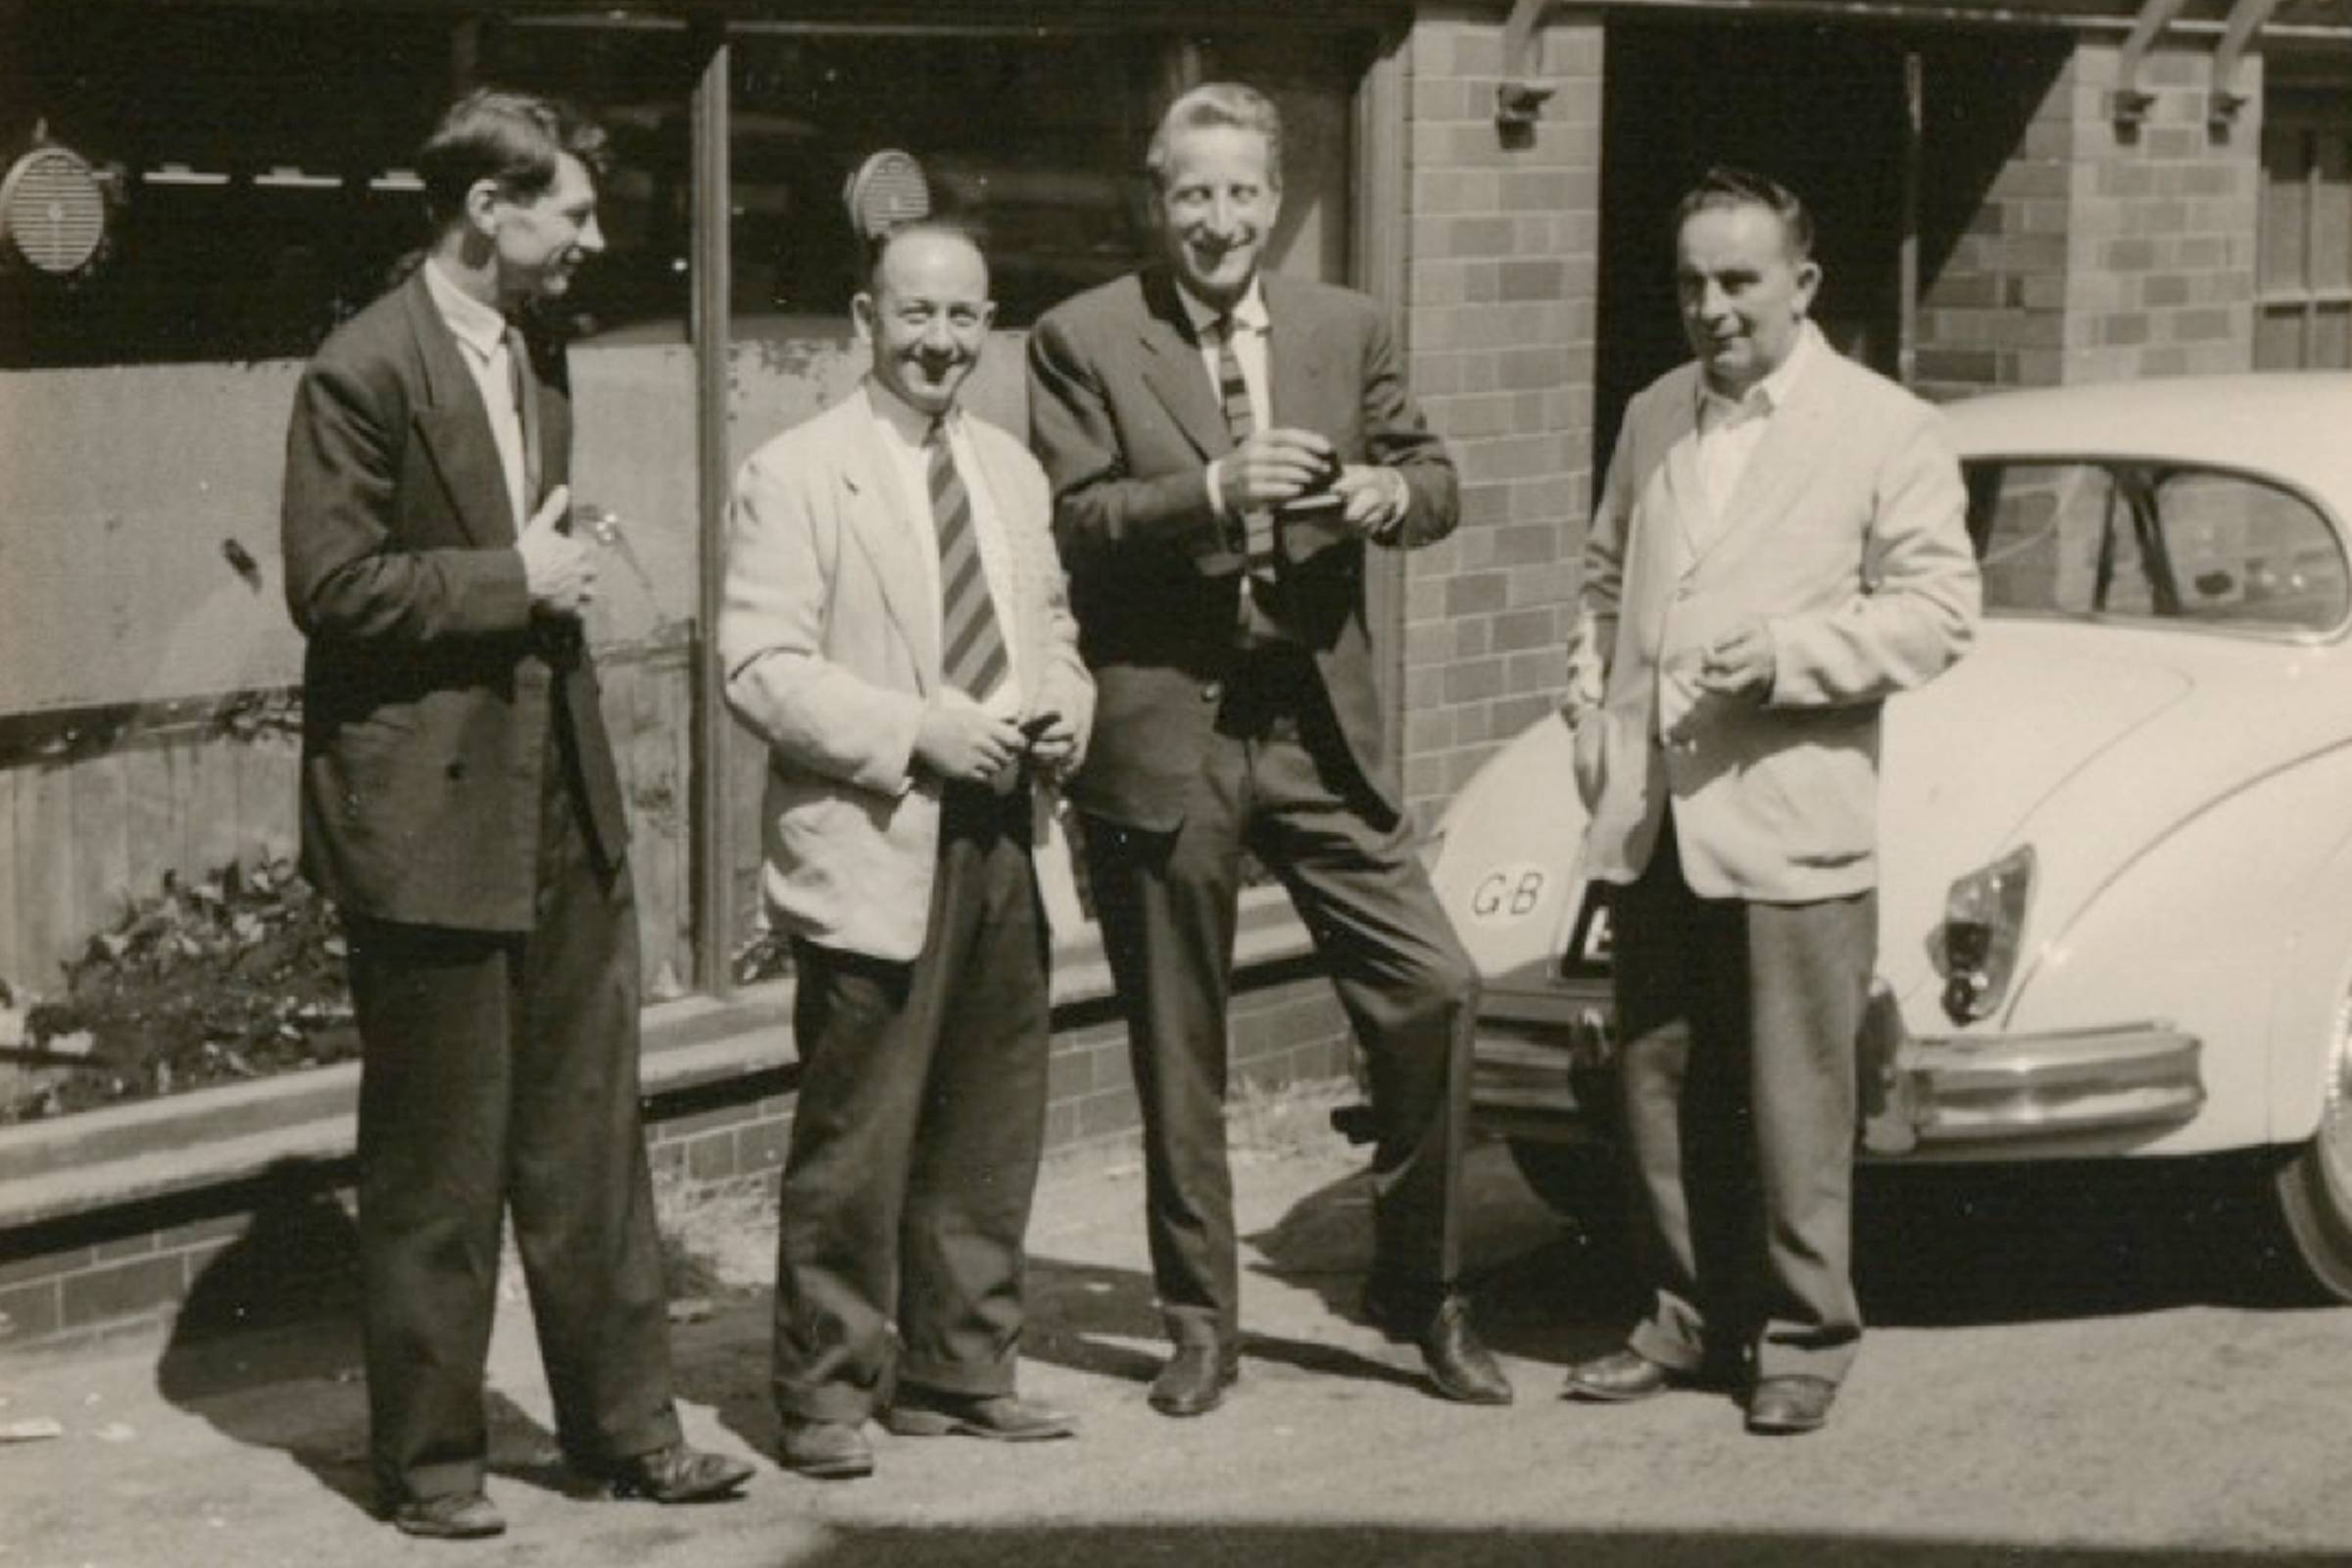 Dr. Klaus Maertens (second from right) outside R. Griggs & Co. LTD.